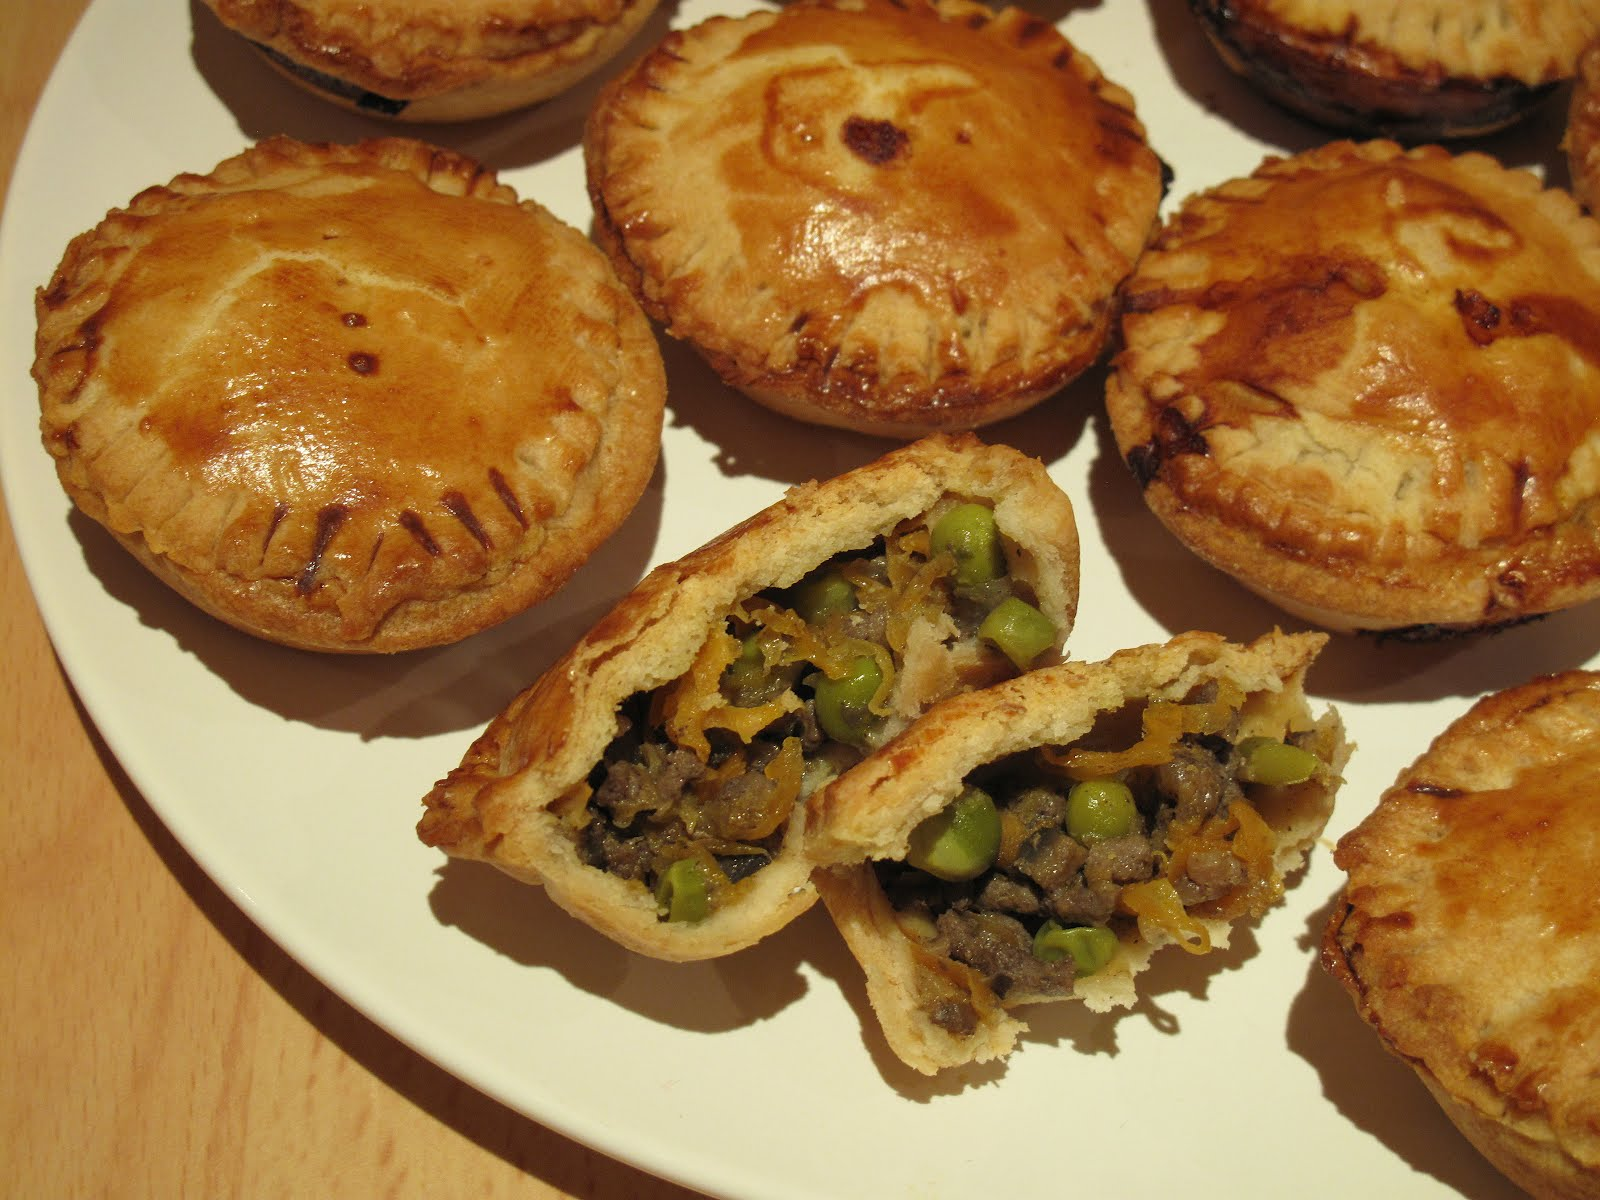 Friday Pie Day Mini Minced Beef and Onion Pies & Friday Pie Day: Mini Minced Beef and Onion Pies | Hungry Jenny